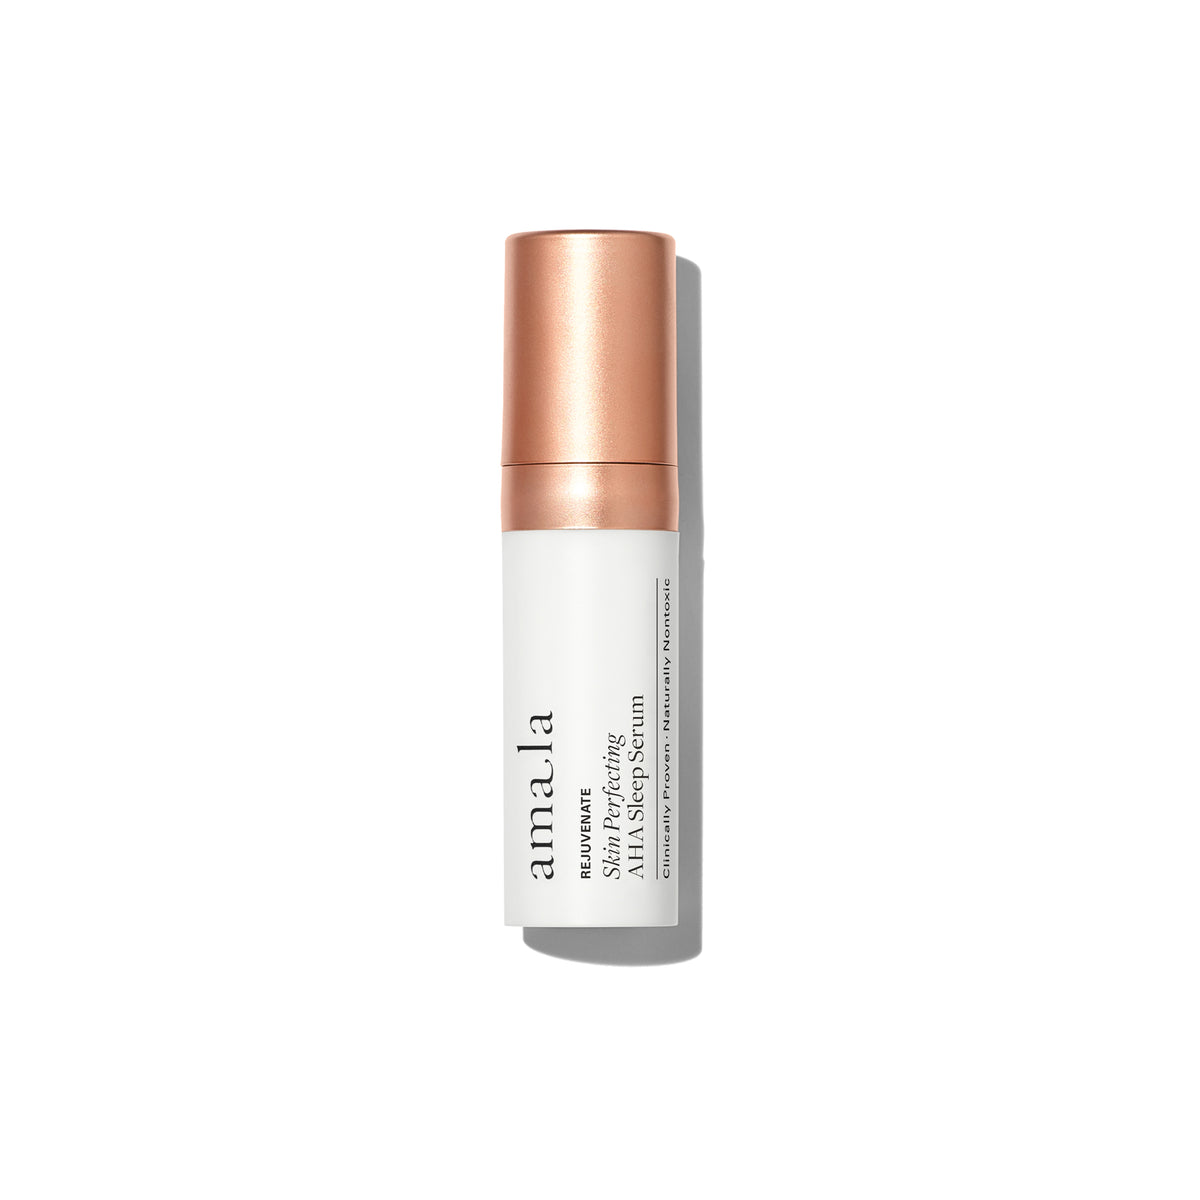 Skin Perfecting AHA Sleep Serum – 5mL